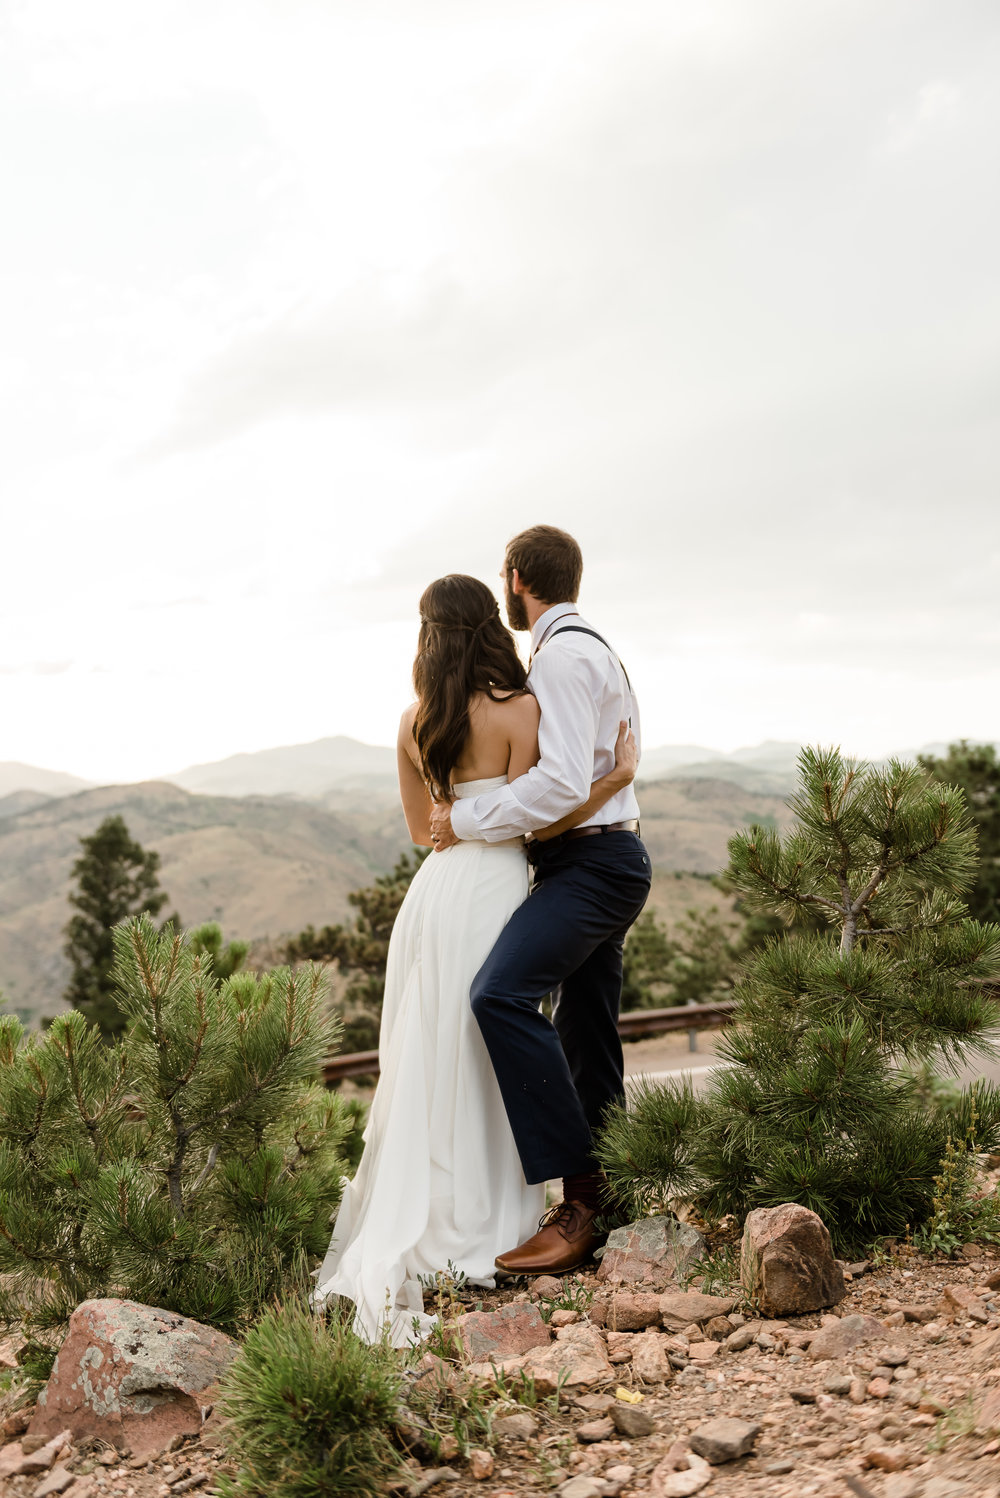 Tashina and Nate - Newlyweds-77.jpg